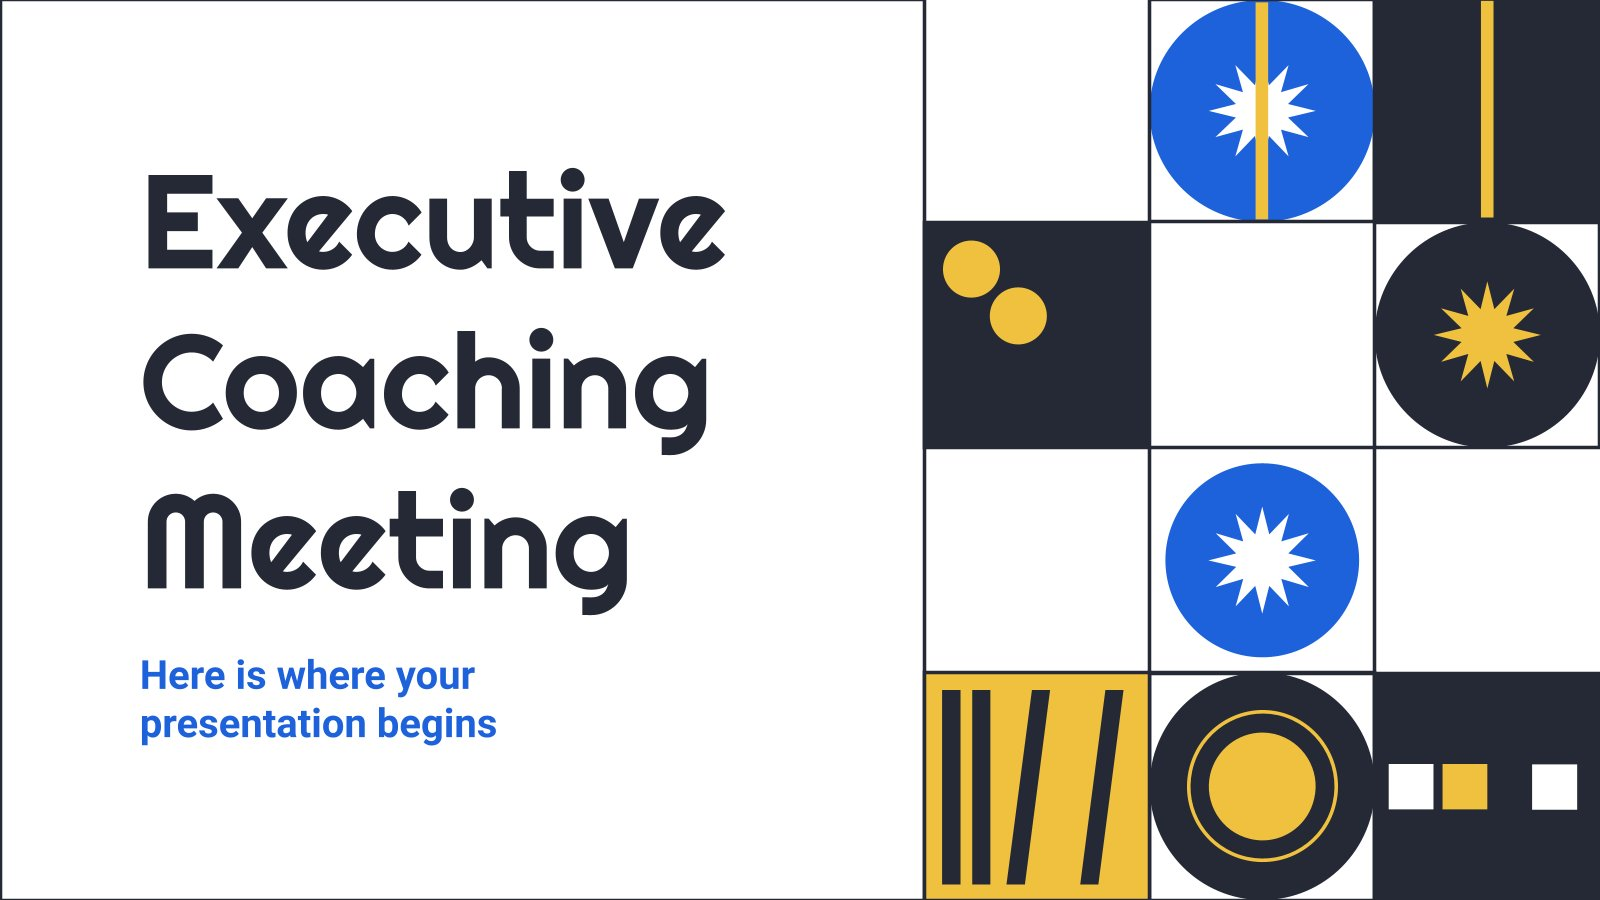 Executive Coaching Meeting presentation template